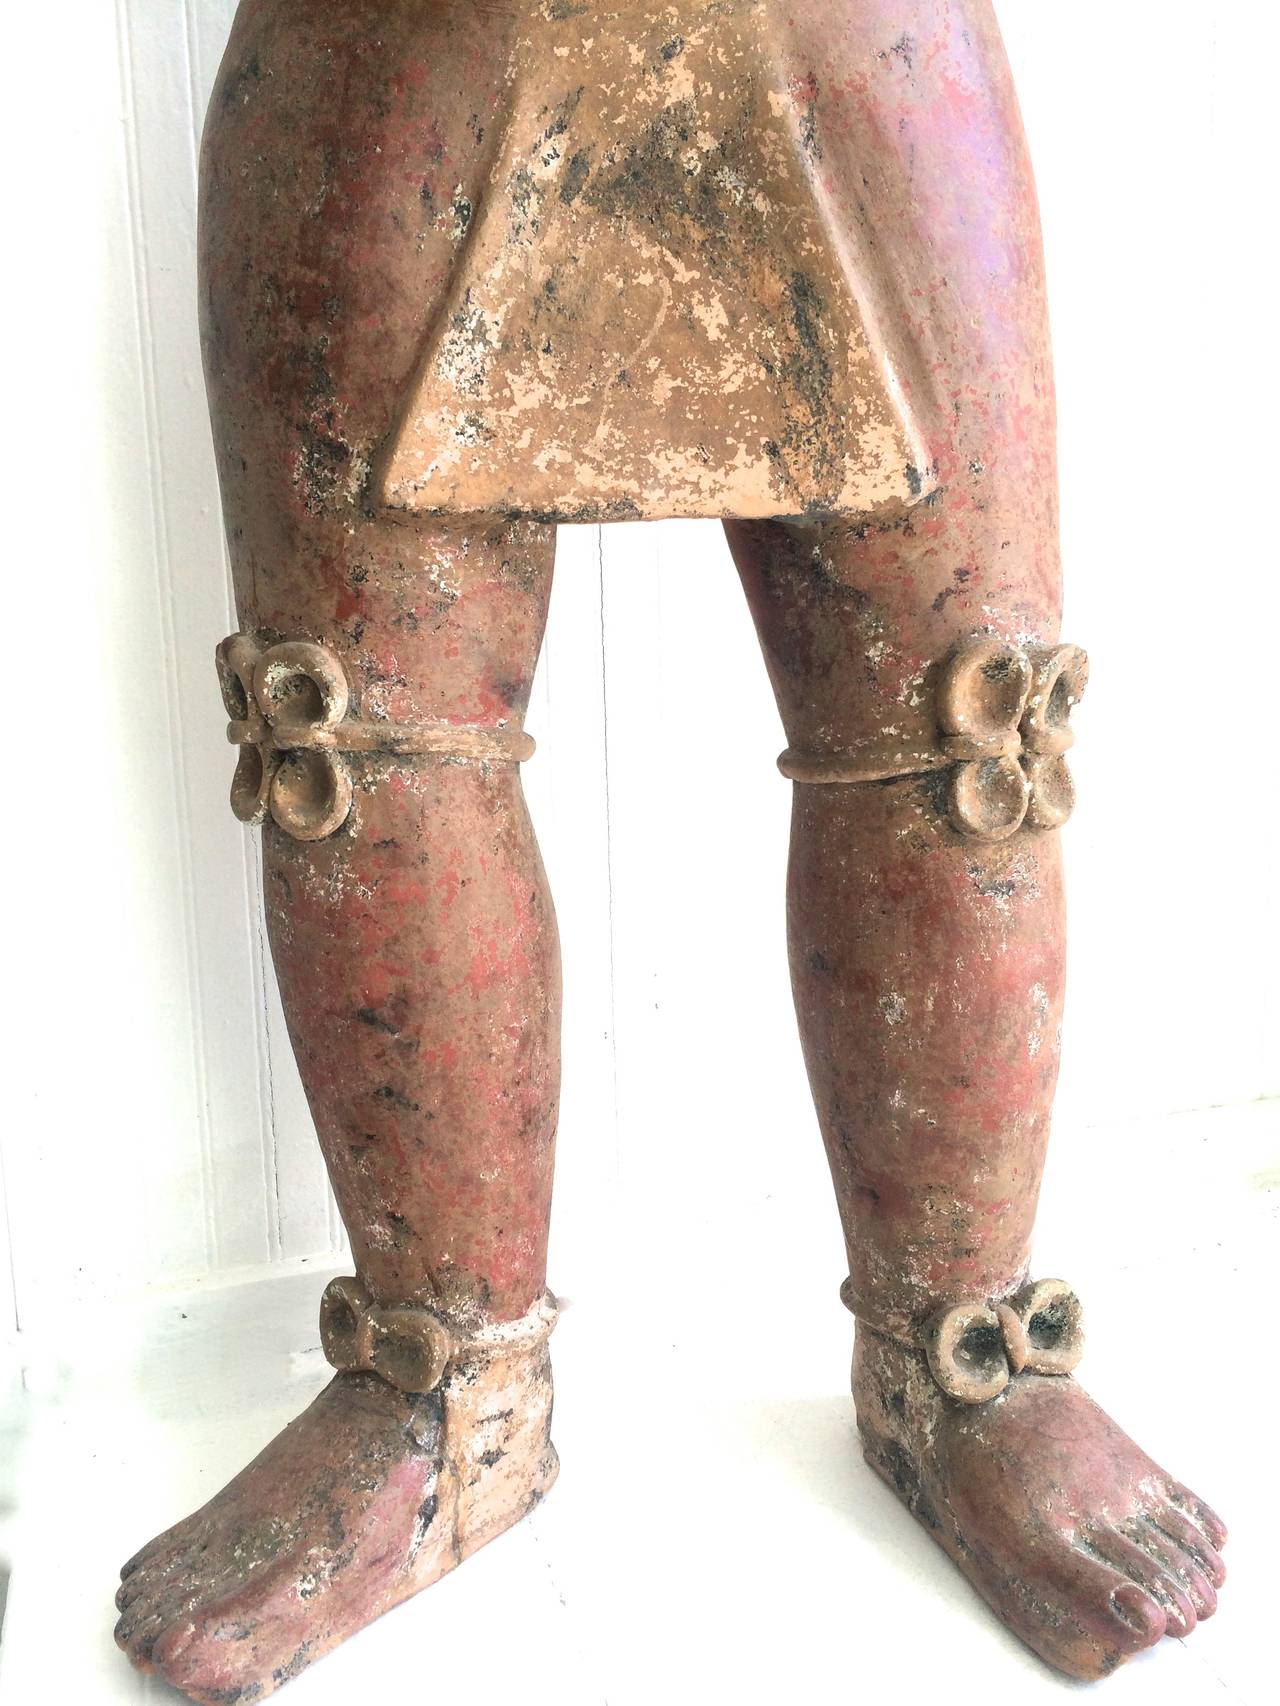 Great Mayan Clay Sculpture 49x27x9 Walter Bastianetto is on Italian born sculpture who moved to Mexico in the 1970's and resined there. Well-known artist for his original clay sculptures inspired by Mexico's Precolumbian life, mythology, and